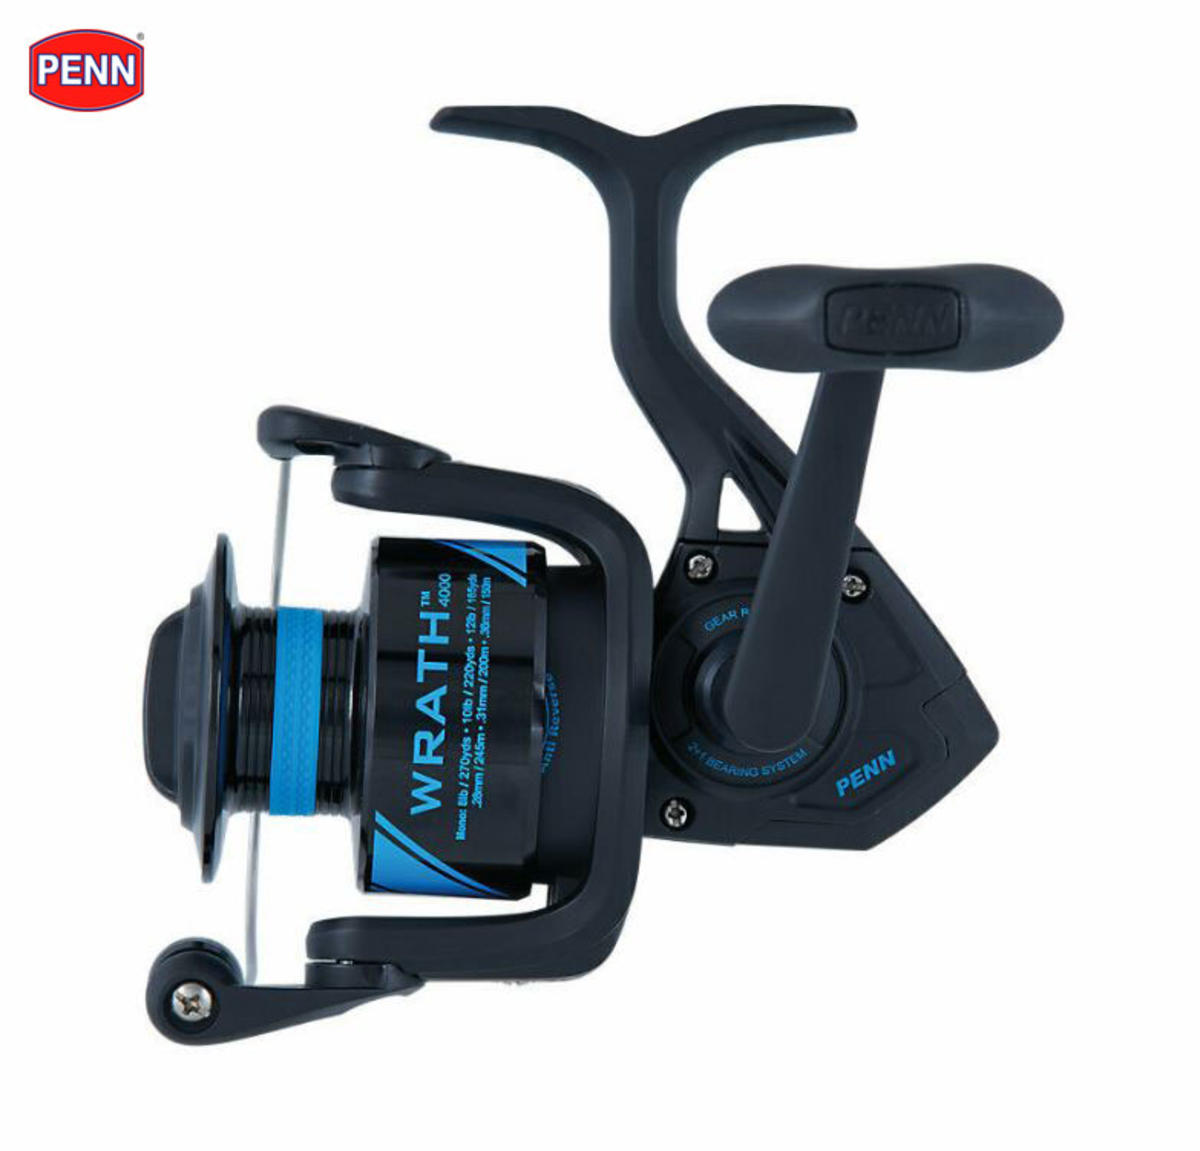 New PENN Wrath 'Fixed Spool' Spinning Fishing Reel - All Sizes / Models